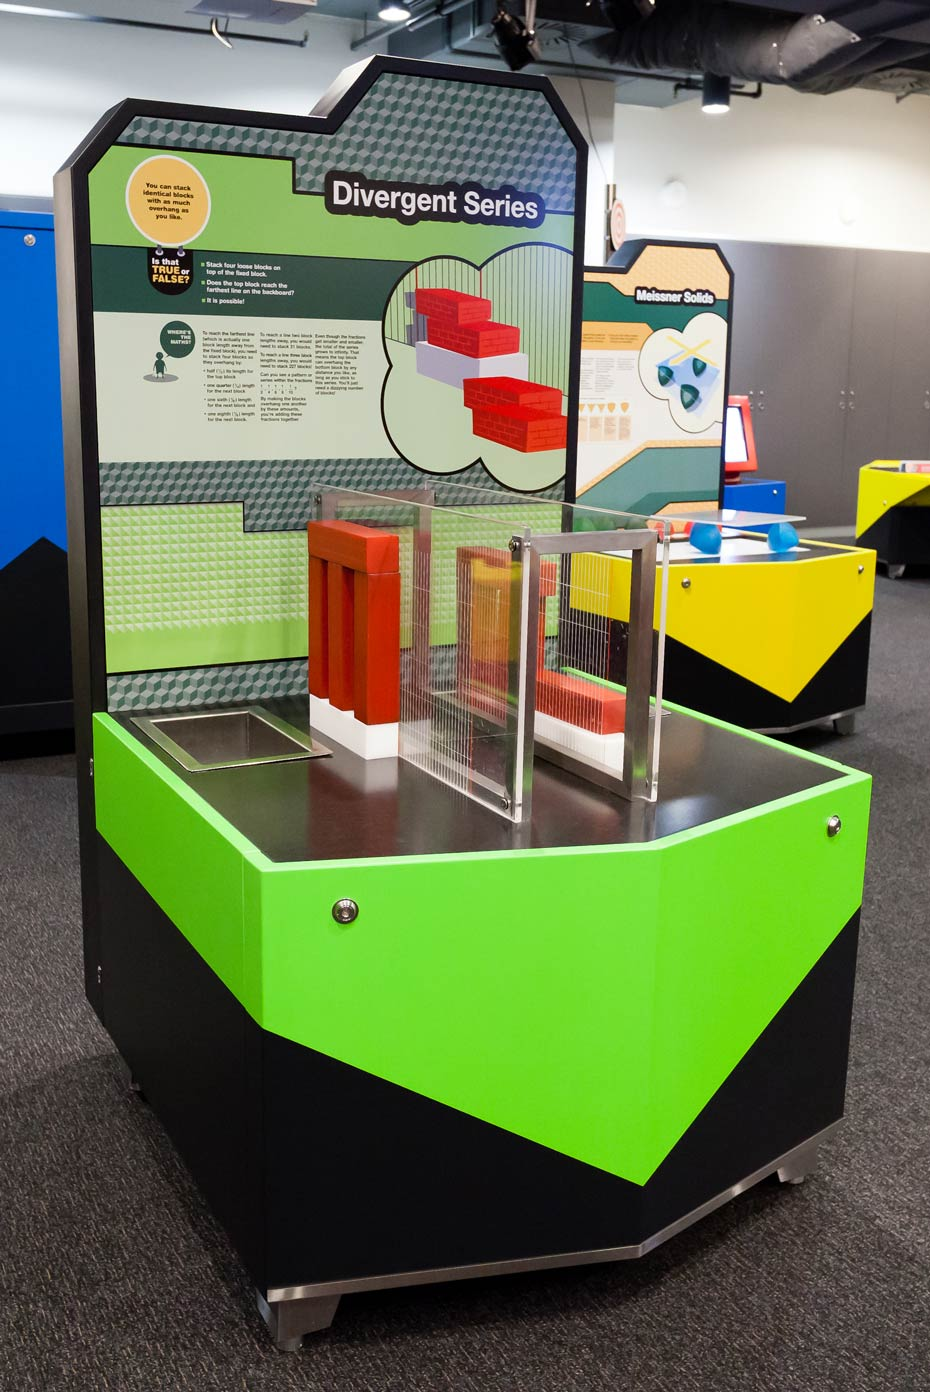 A black, green and grey exhibit table with vertical information panel and a series of red and white blocks on the table surface.